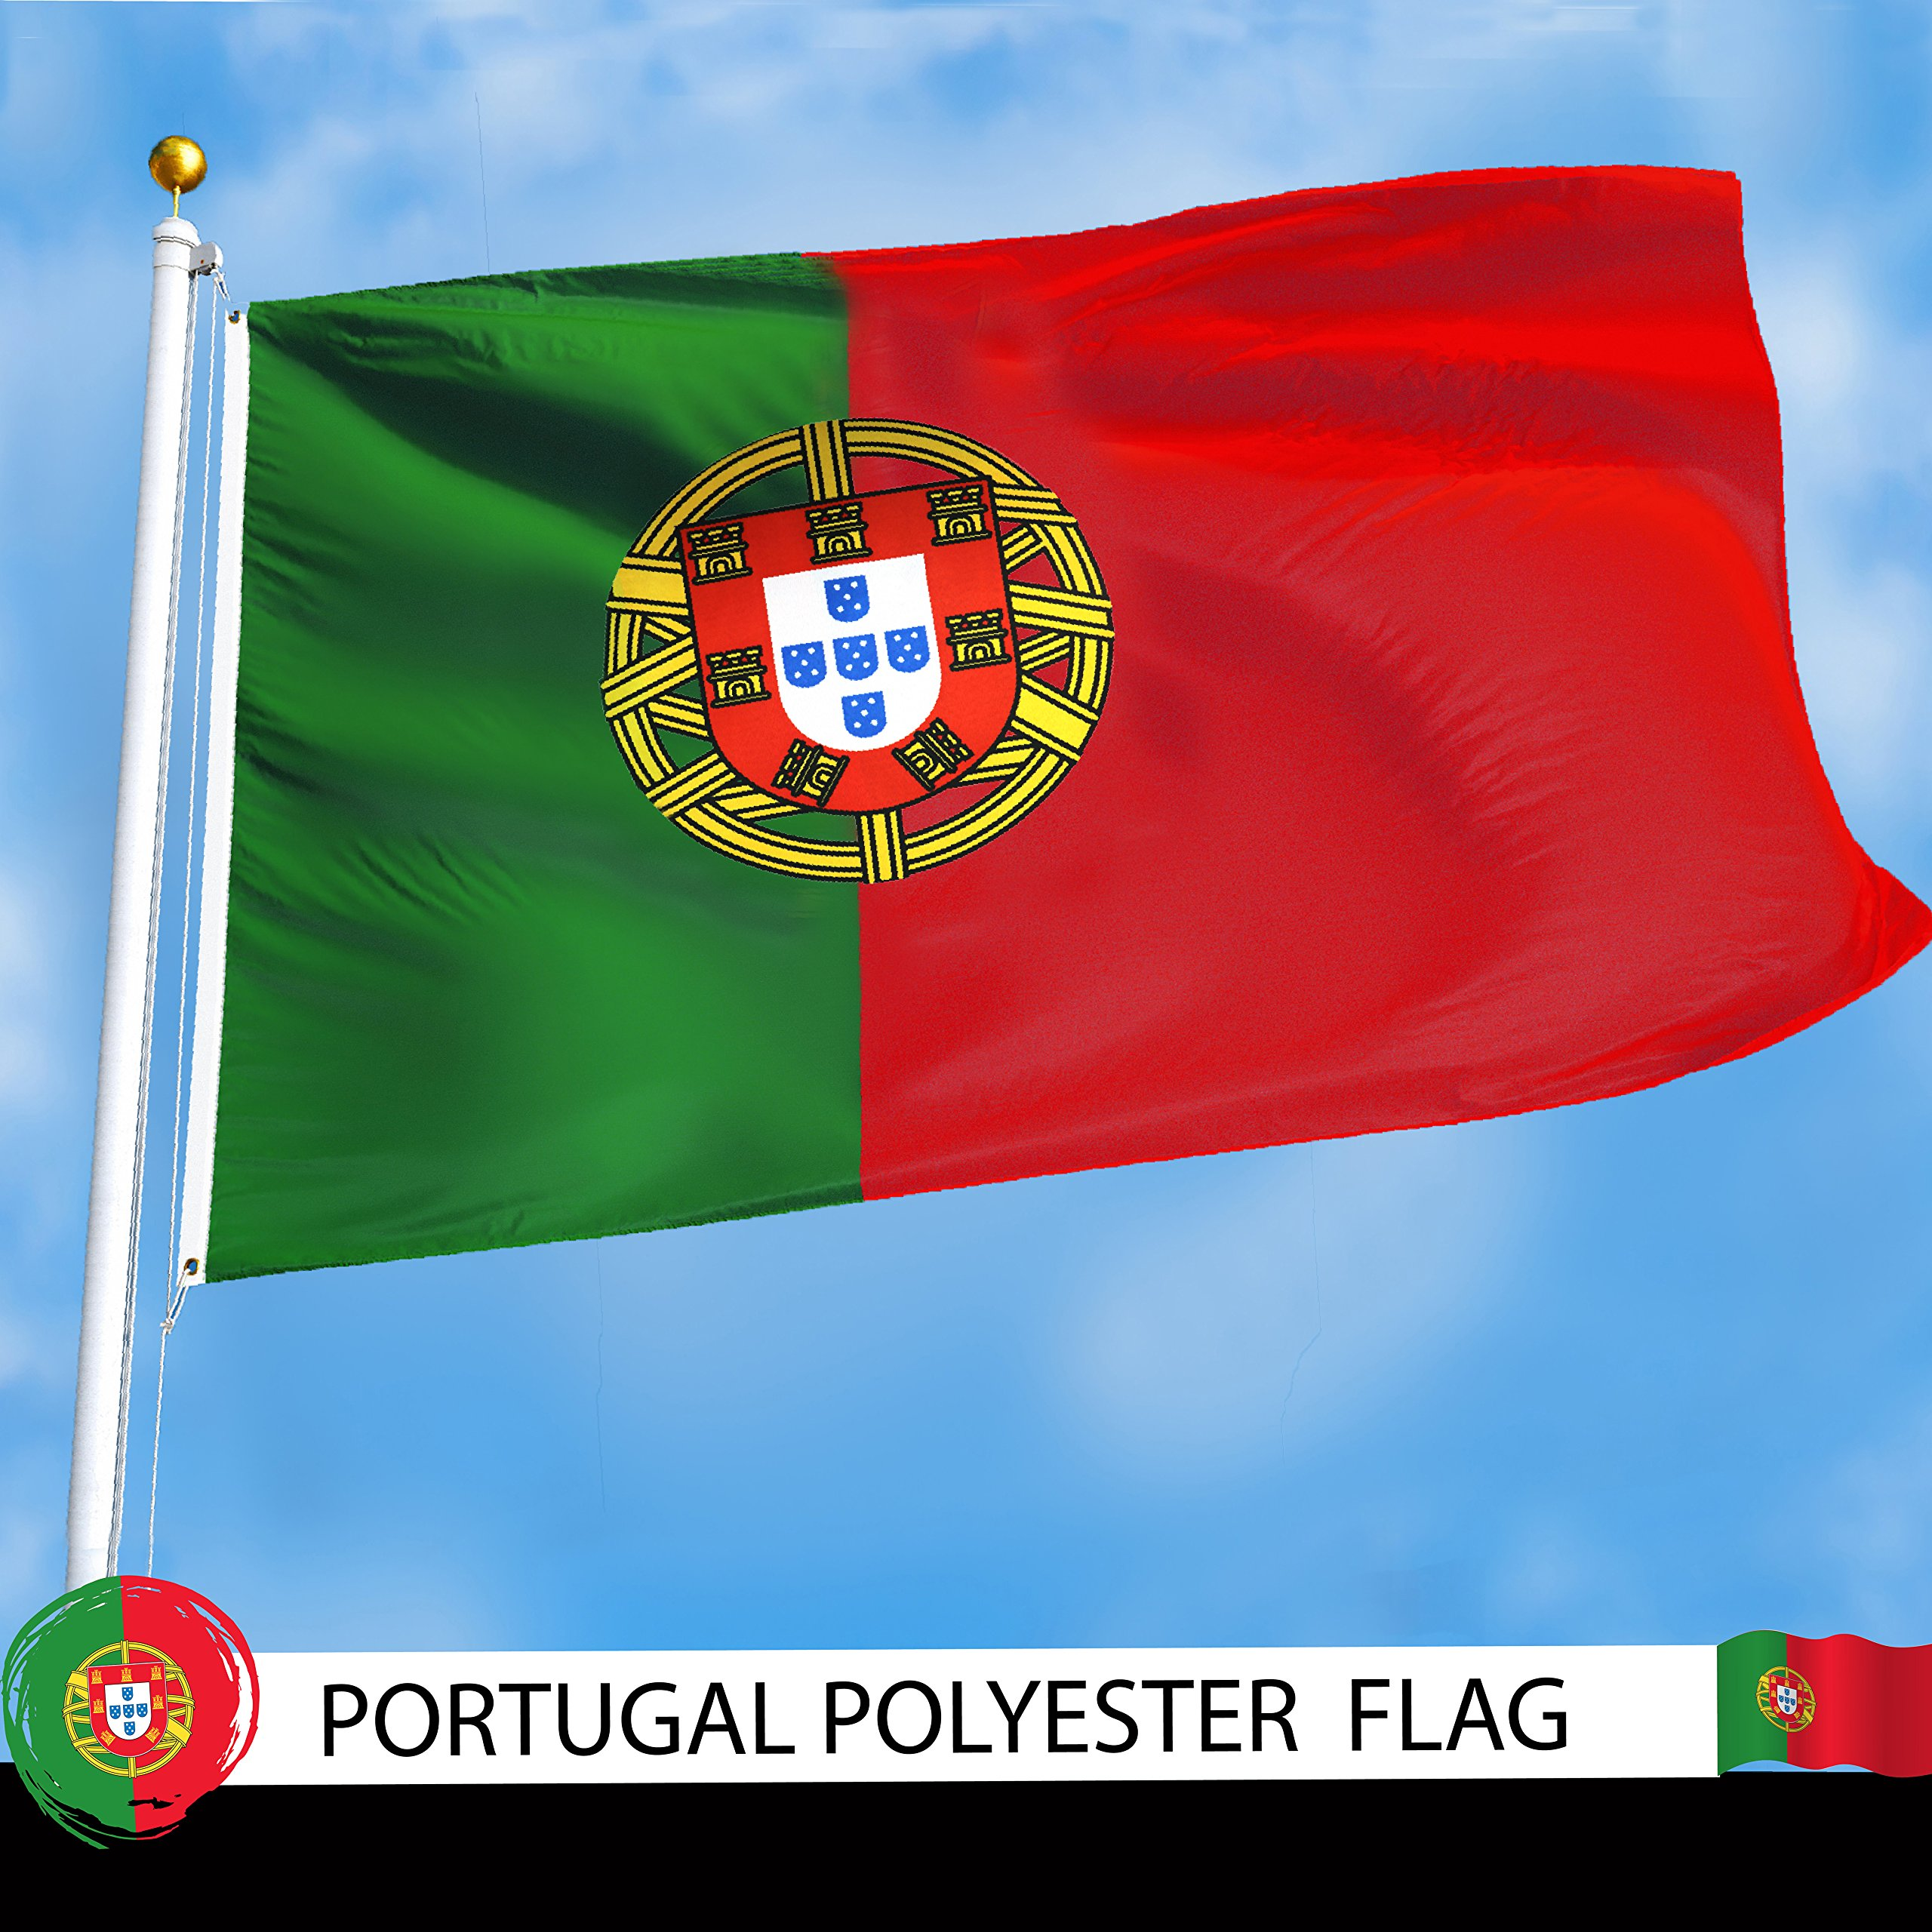 G128 - Portugal Portuguese Flag 3x5 ft Printed Brass Grommets 150D Quality Polyester Flag Indoor/Outdoor - Much Thicker and More Durable than 100D and 75D Polyester